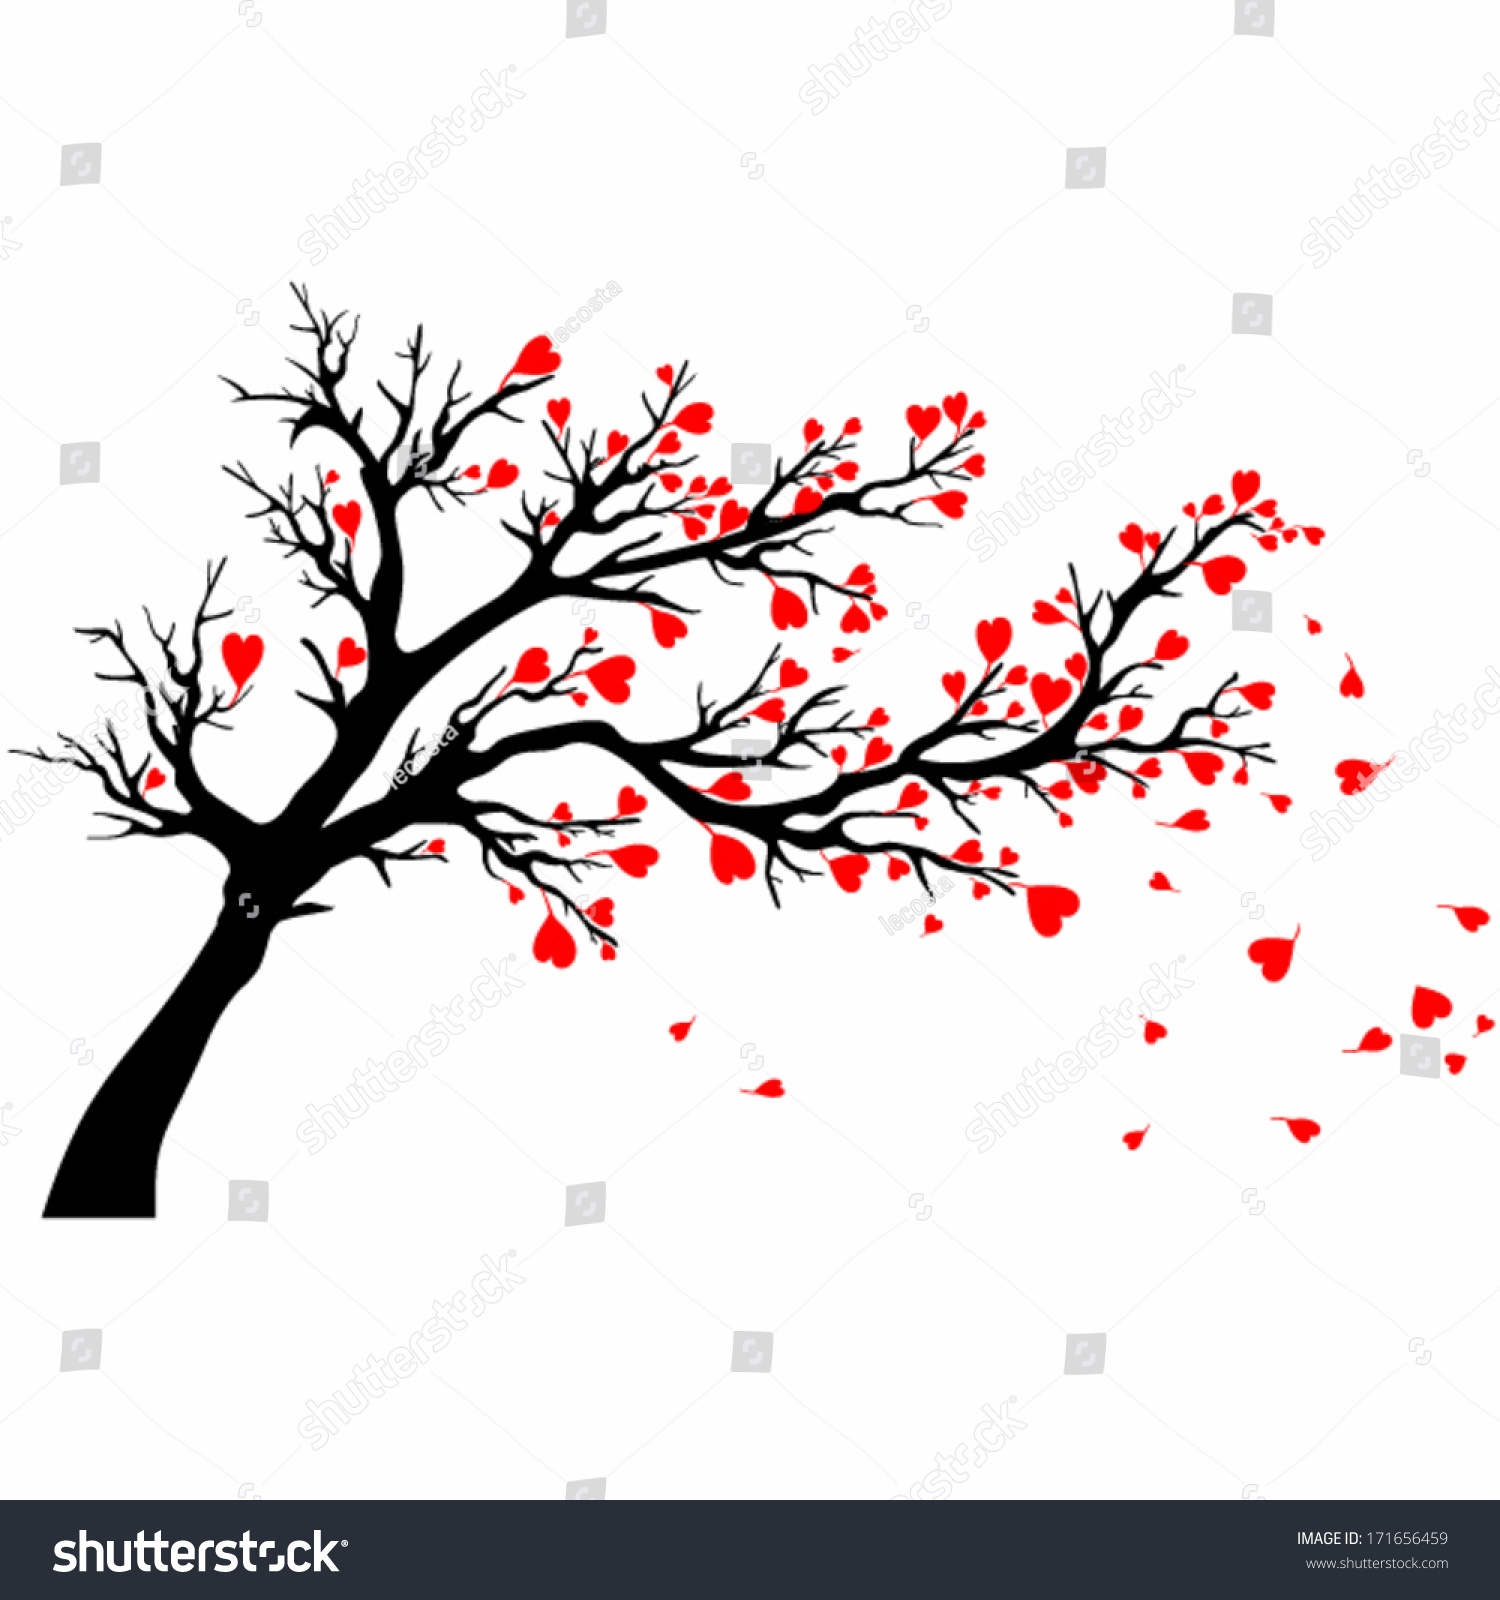 Valentine Day Tree Vector Tree Heart Stock Vector 171656459